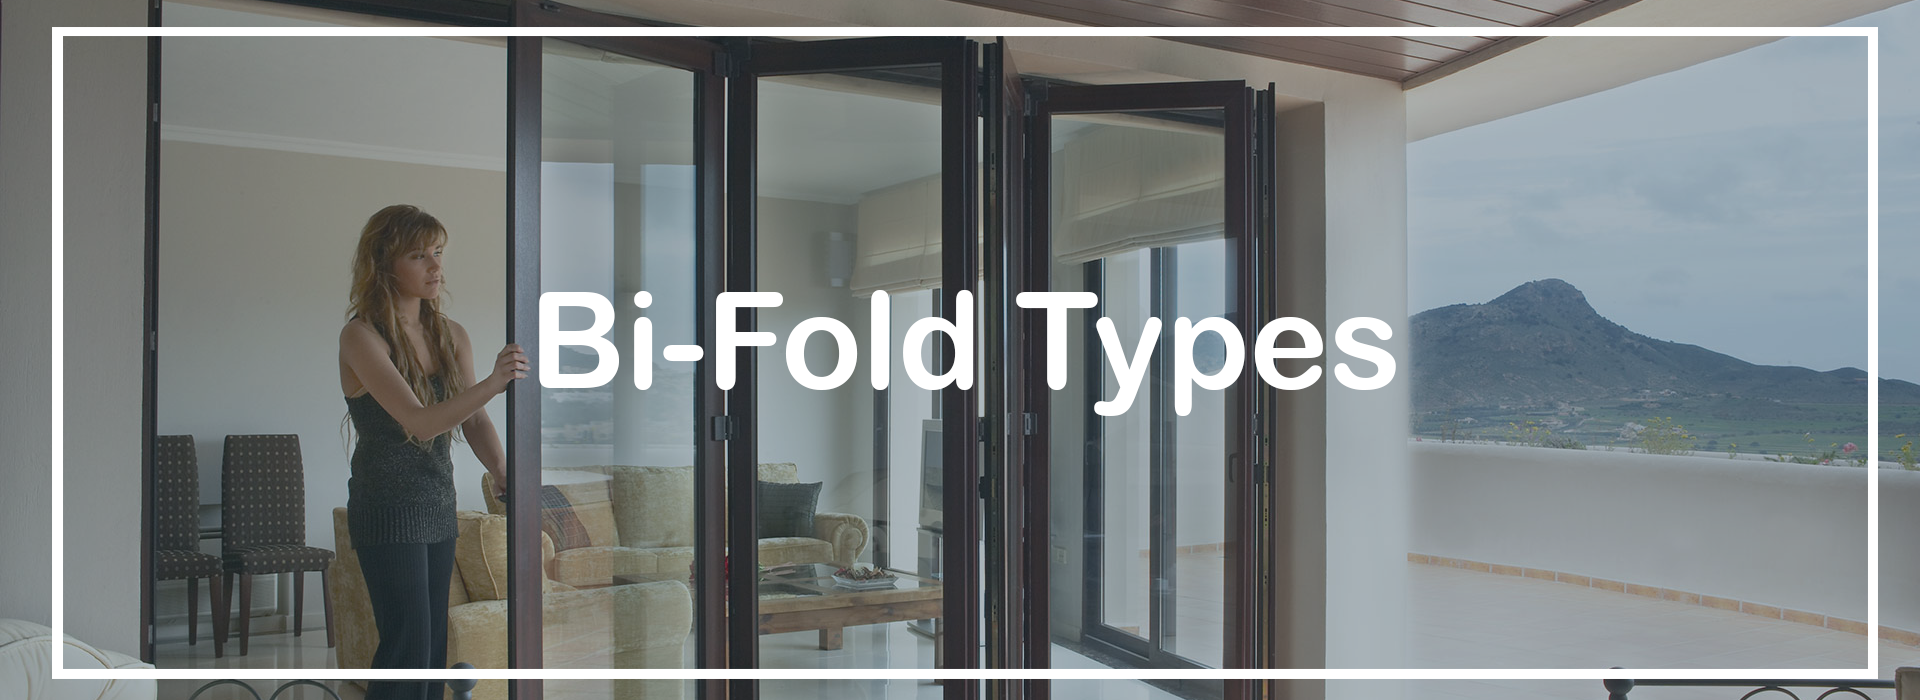 Bi Fold Door Options, Bifold Doors Opening Options, Bi Fold Door